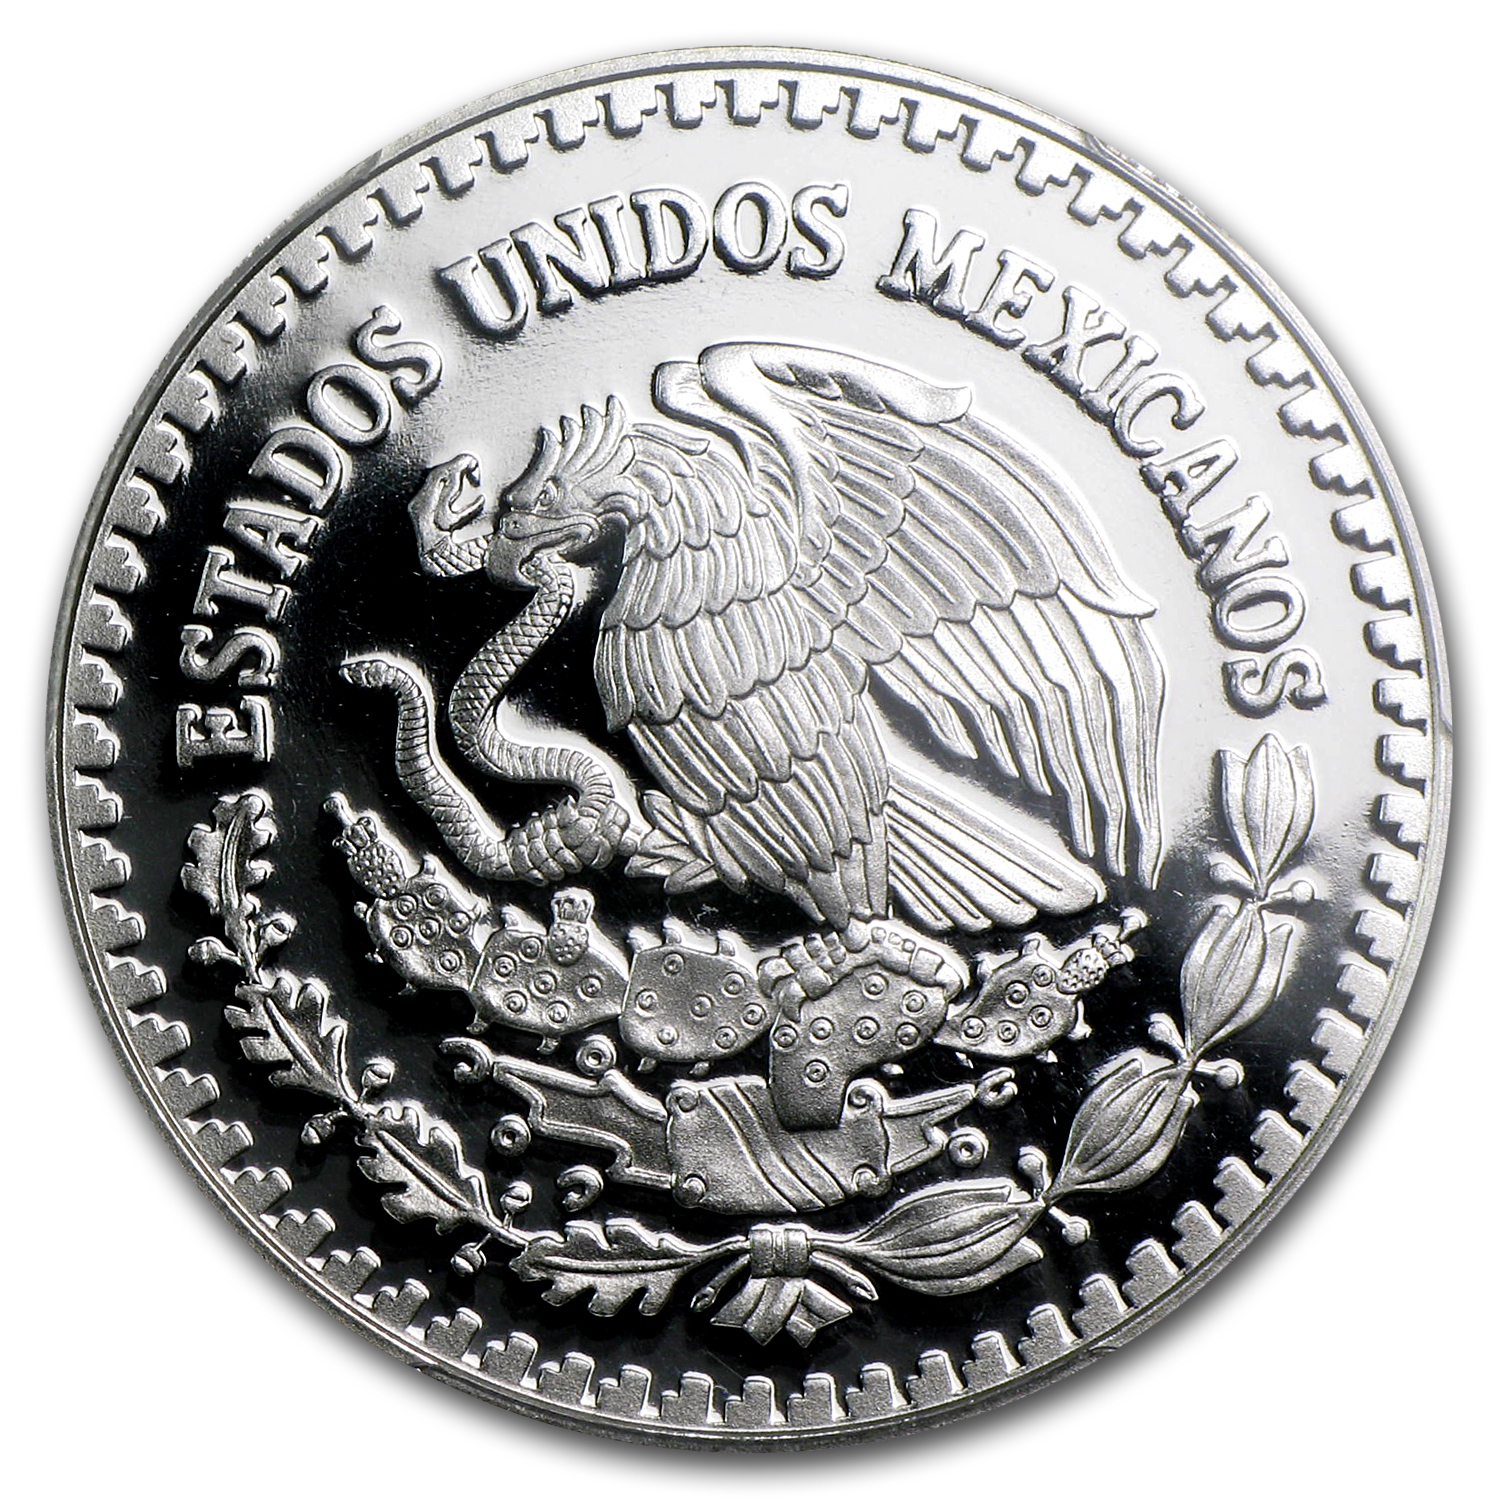 2010 Mexico 1/2 oz Proof Silver Libertad PR-69 PCGS